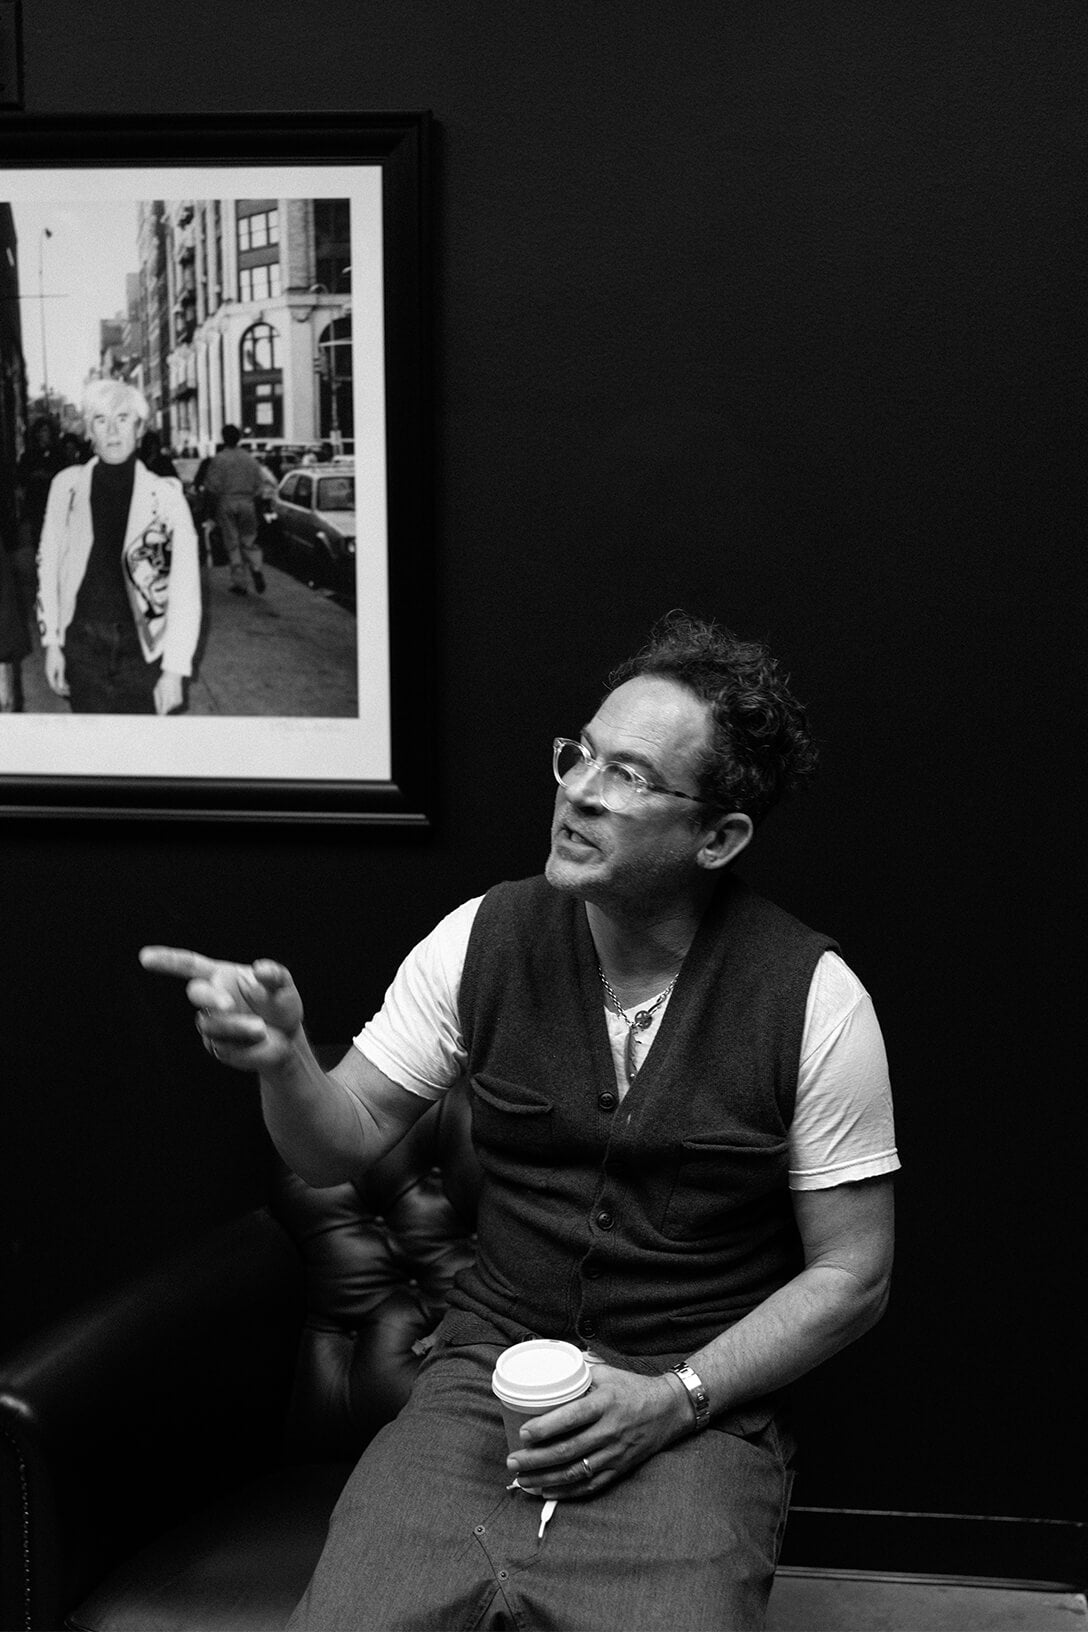 Mark McNairy speaking in front of framed photo